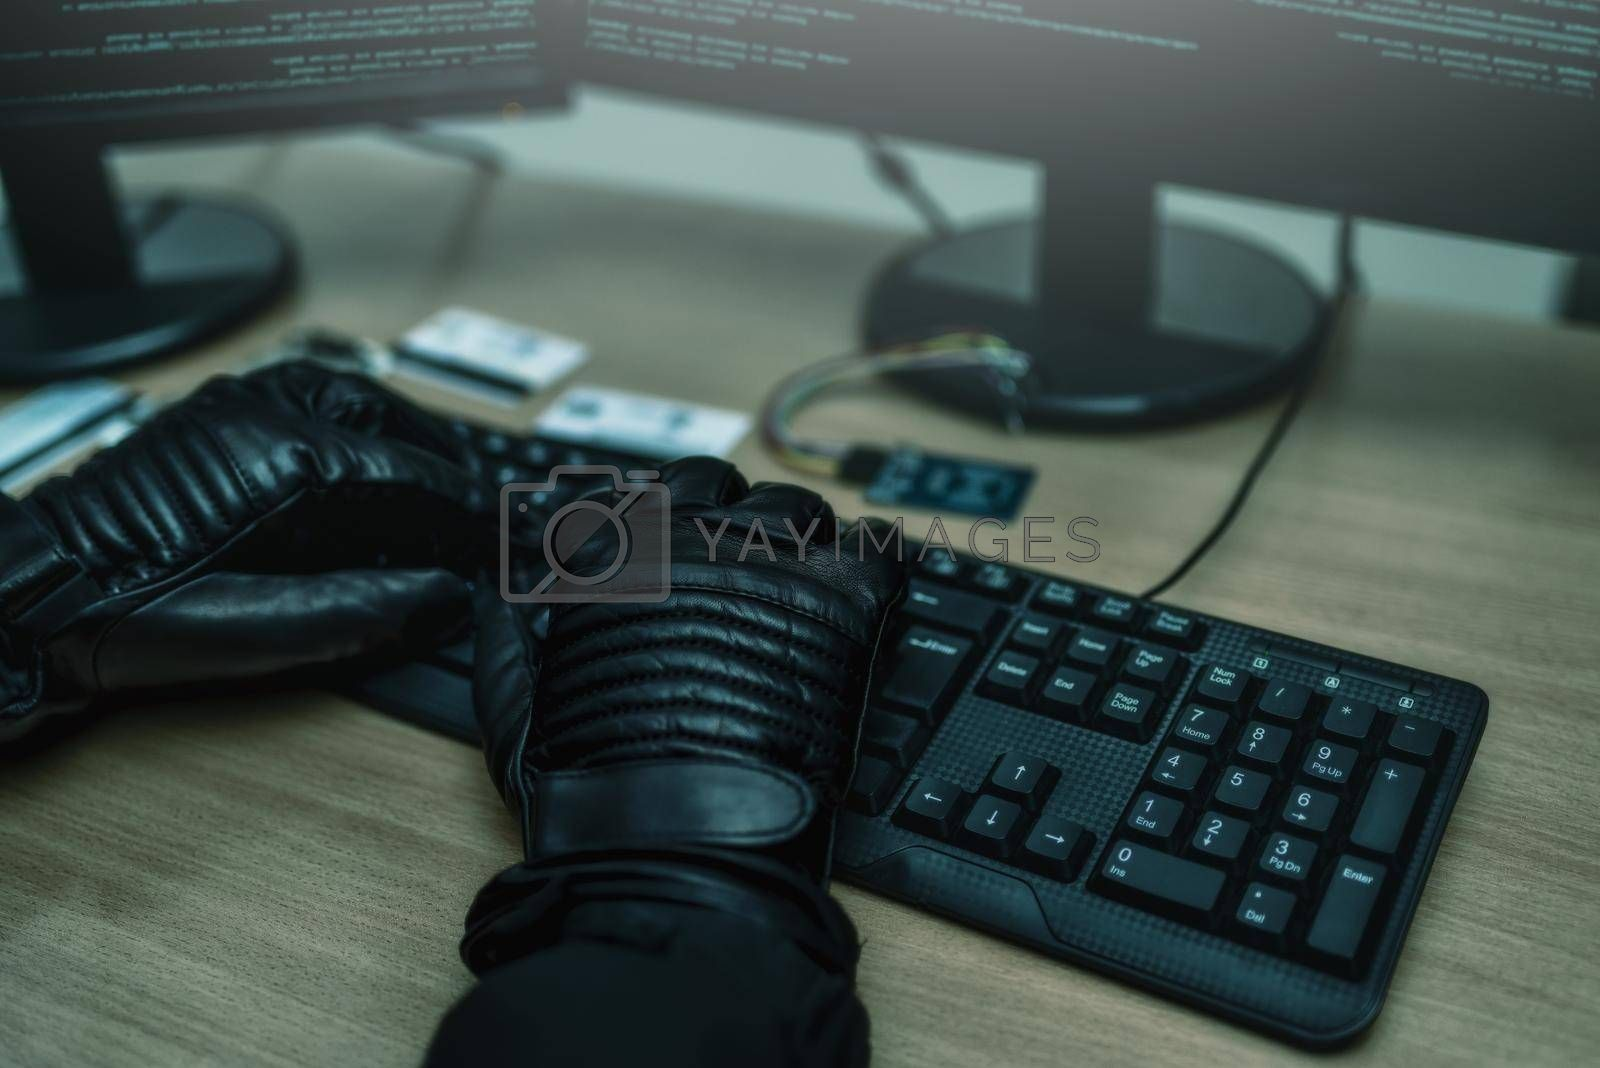 Royalty free image of Shot from the Back to Hacker Breaking into Corporate Data Servers from His Underground Hideout. close view of hackers hands by Nickstock